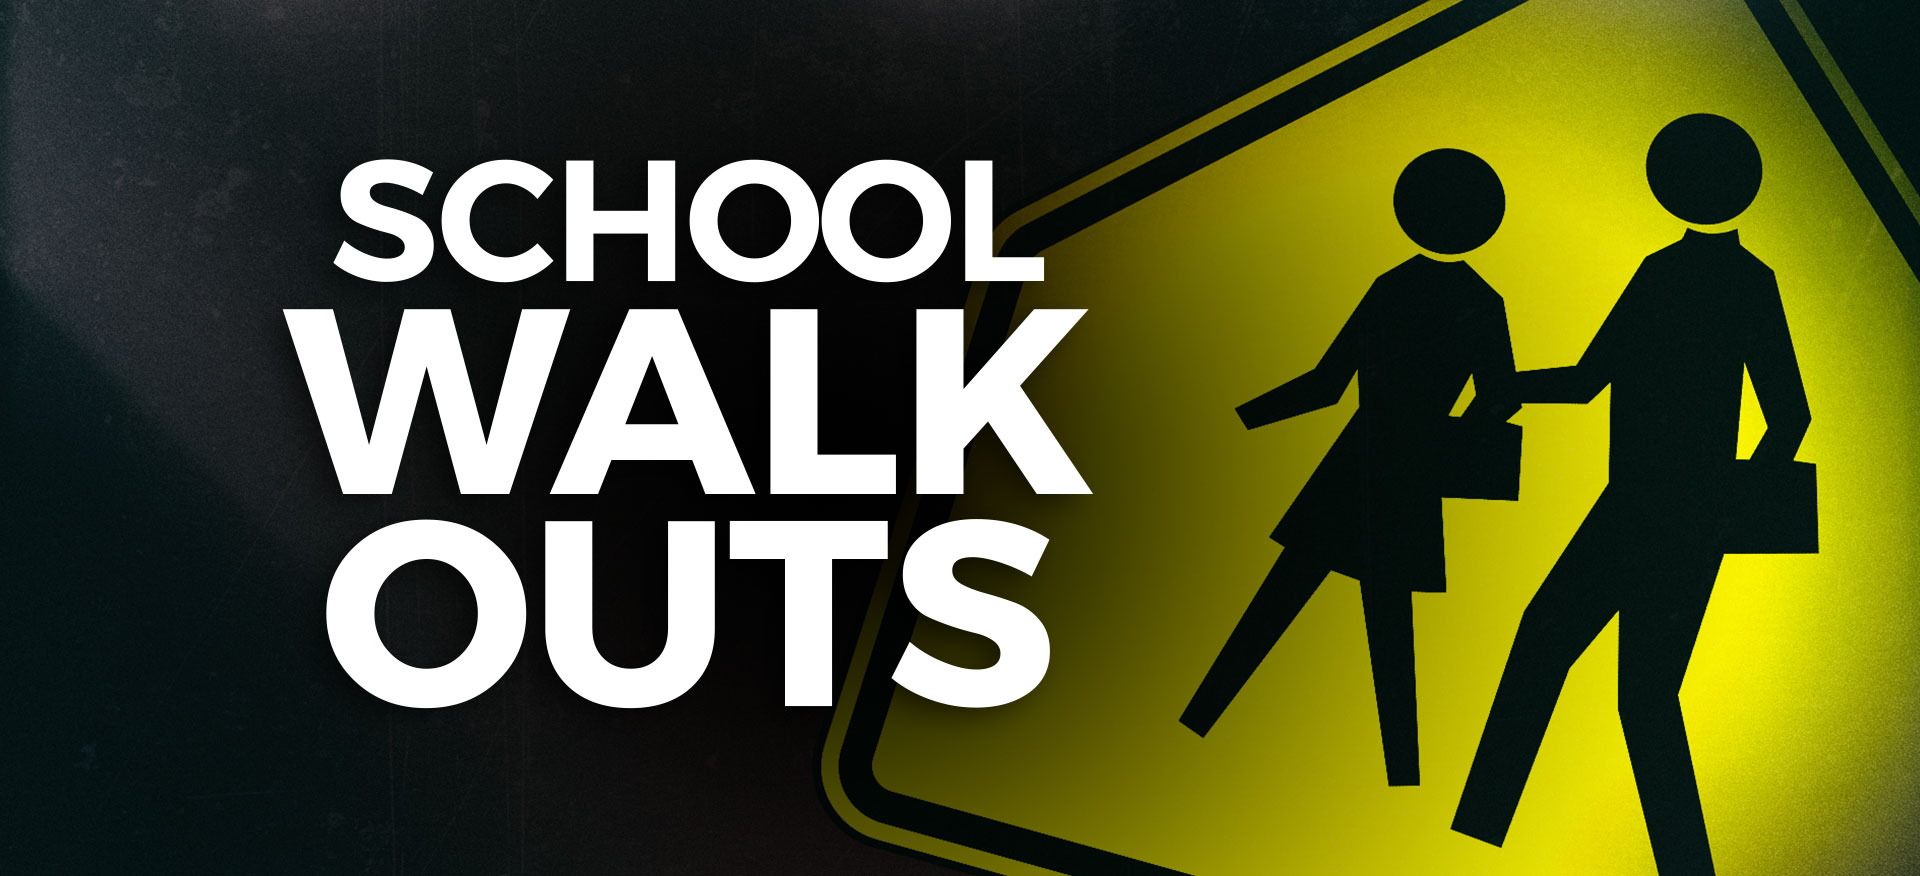 School Walk Outs